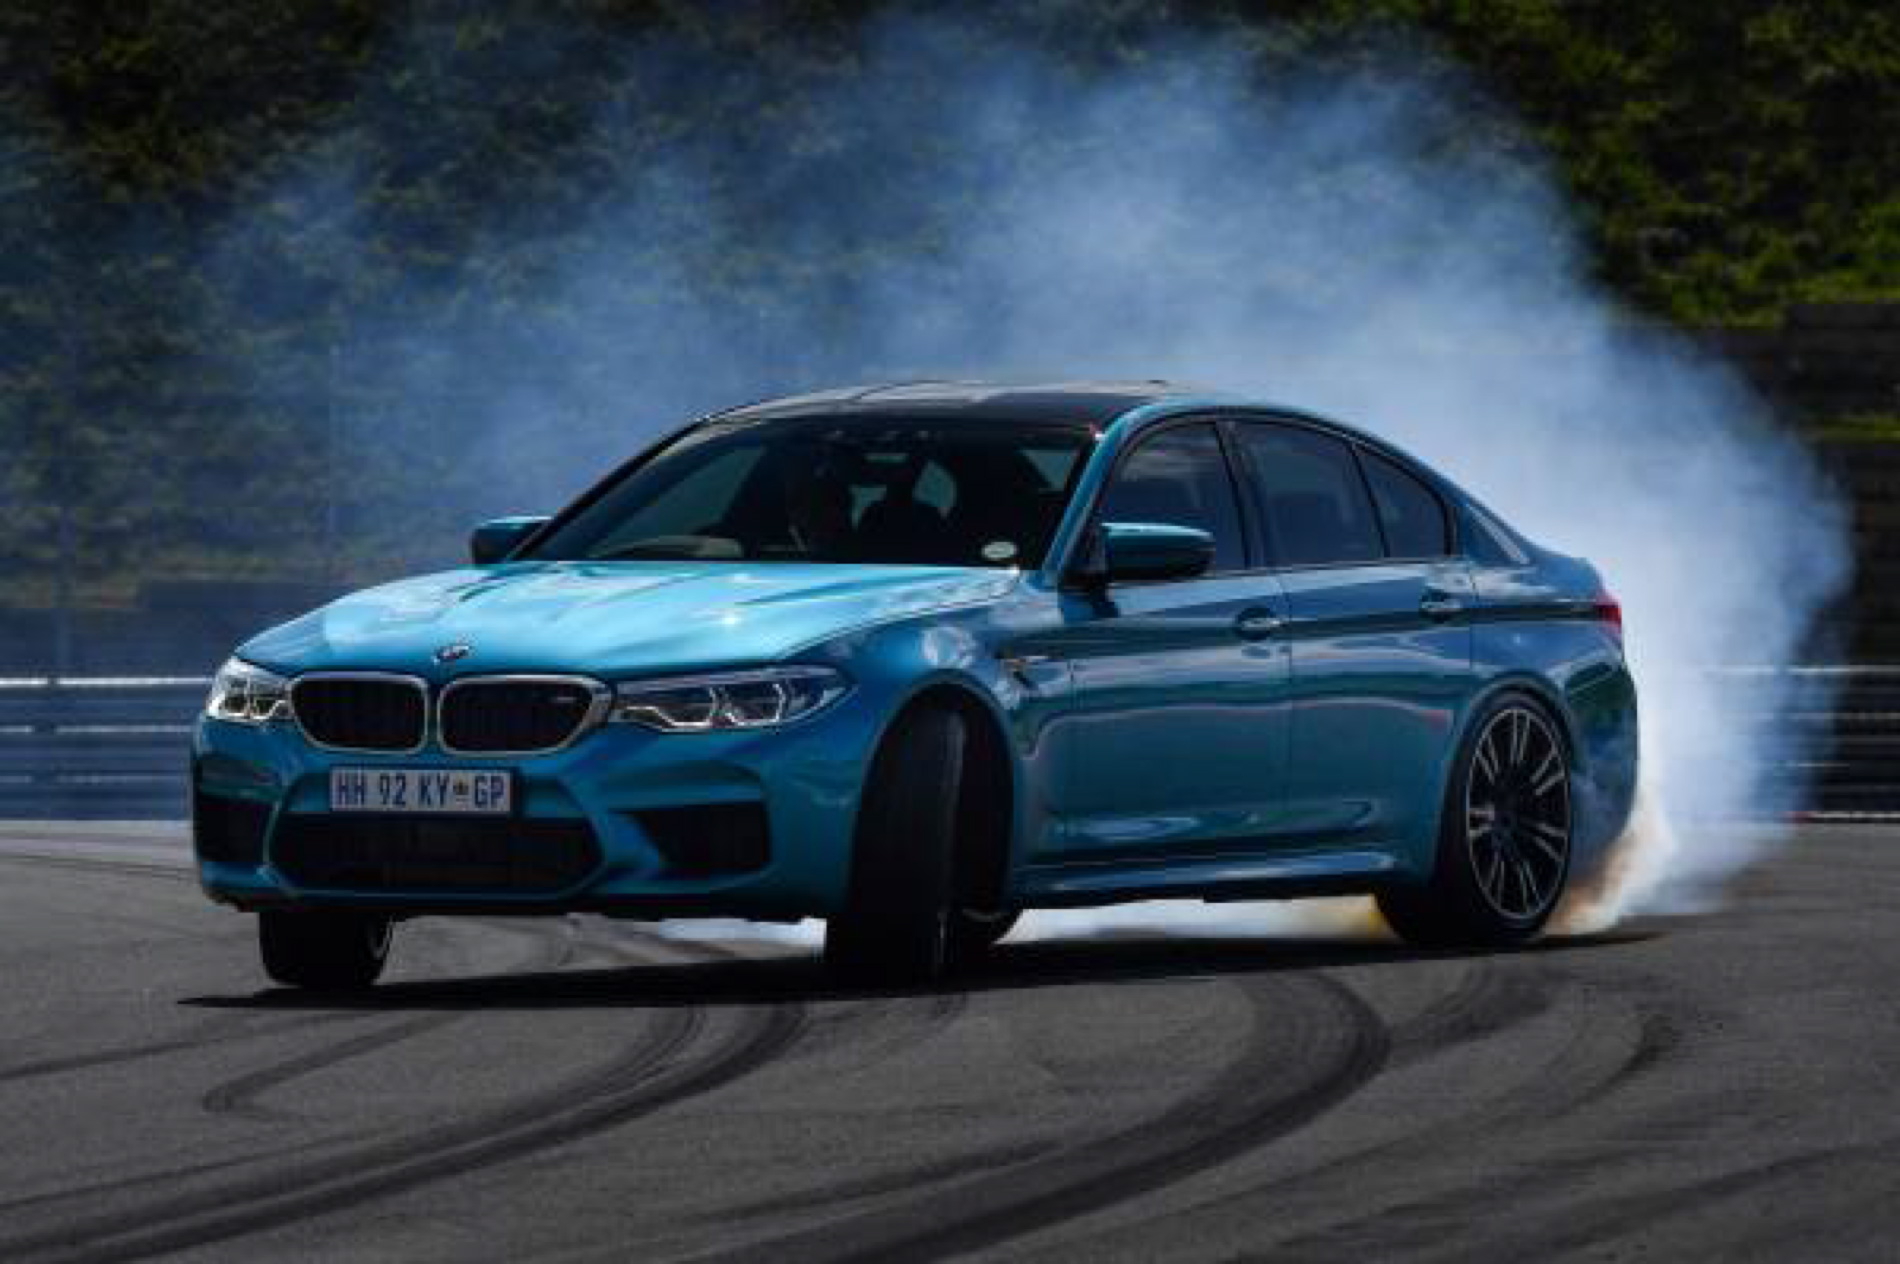 BMW M5 Snapper Rocks Blue images 11